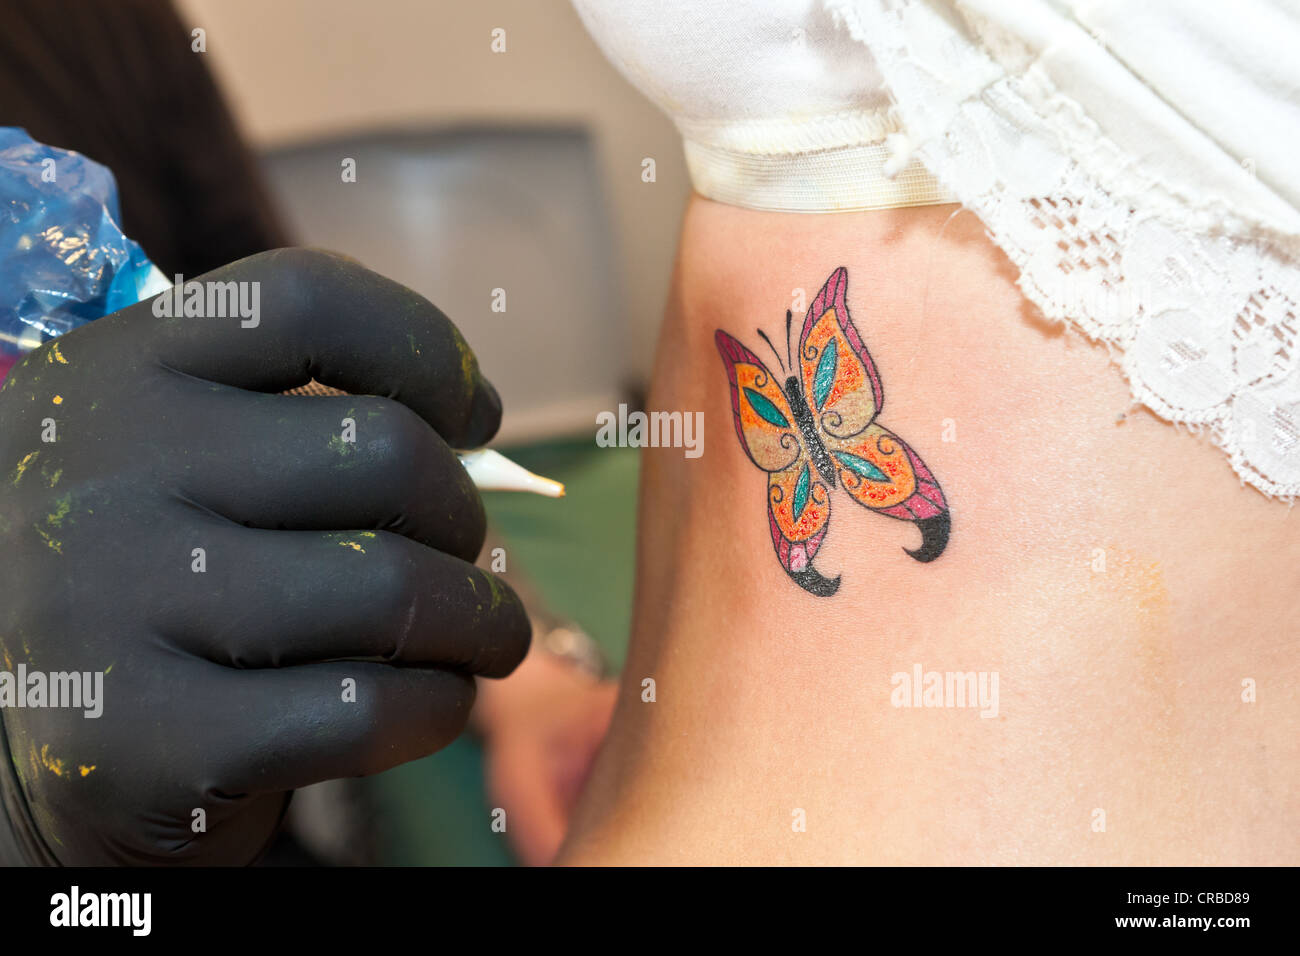 Finished tattoo of a butterfly - Stock Image